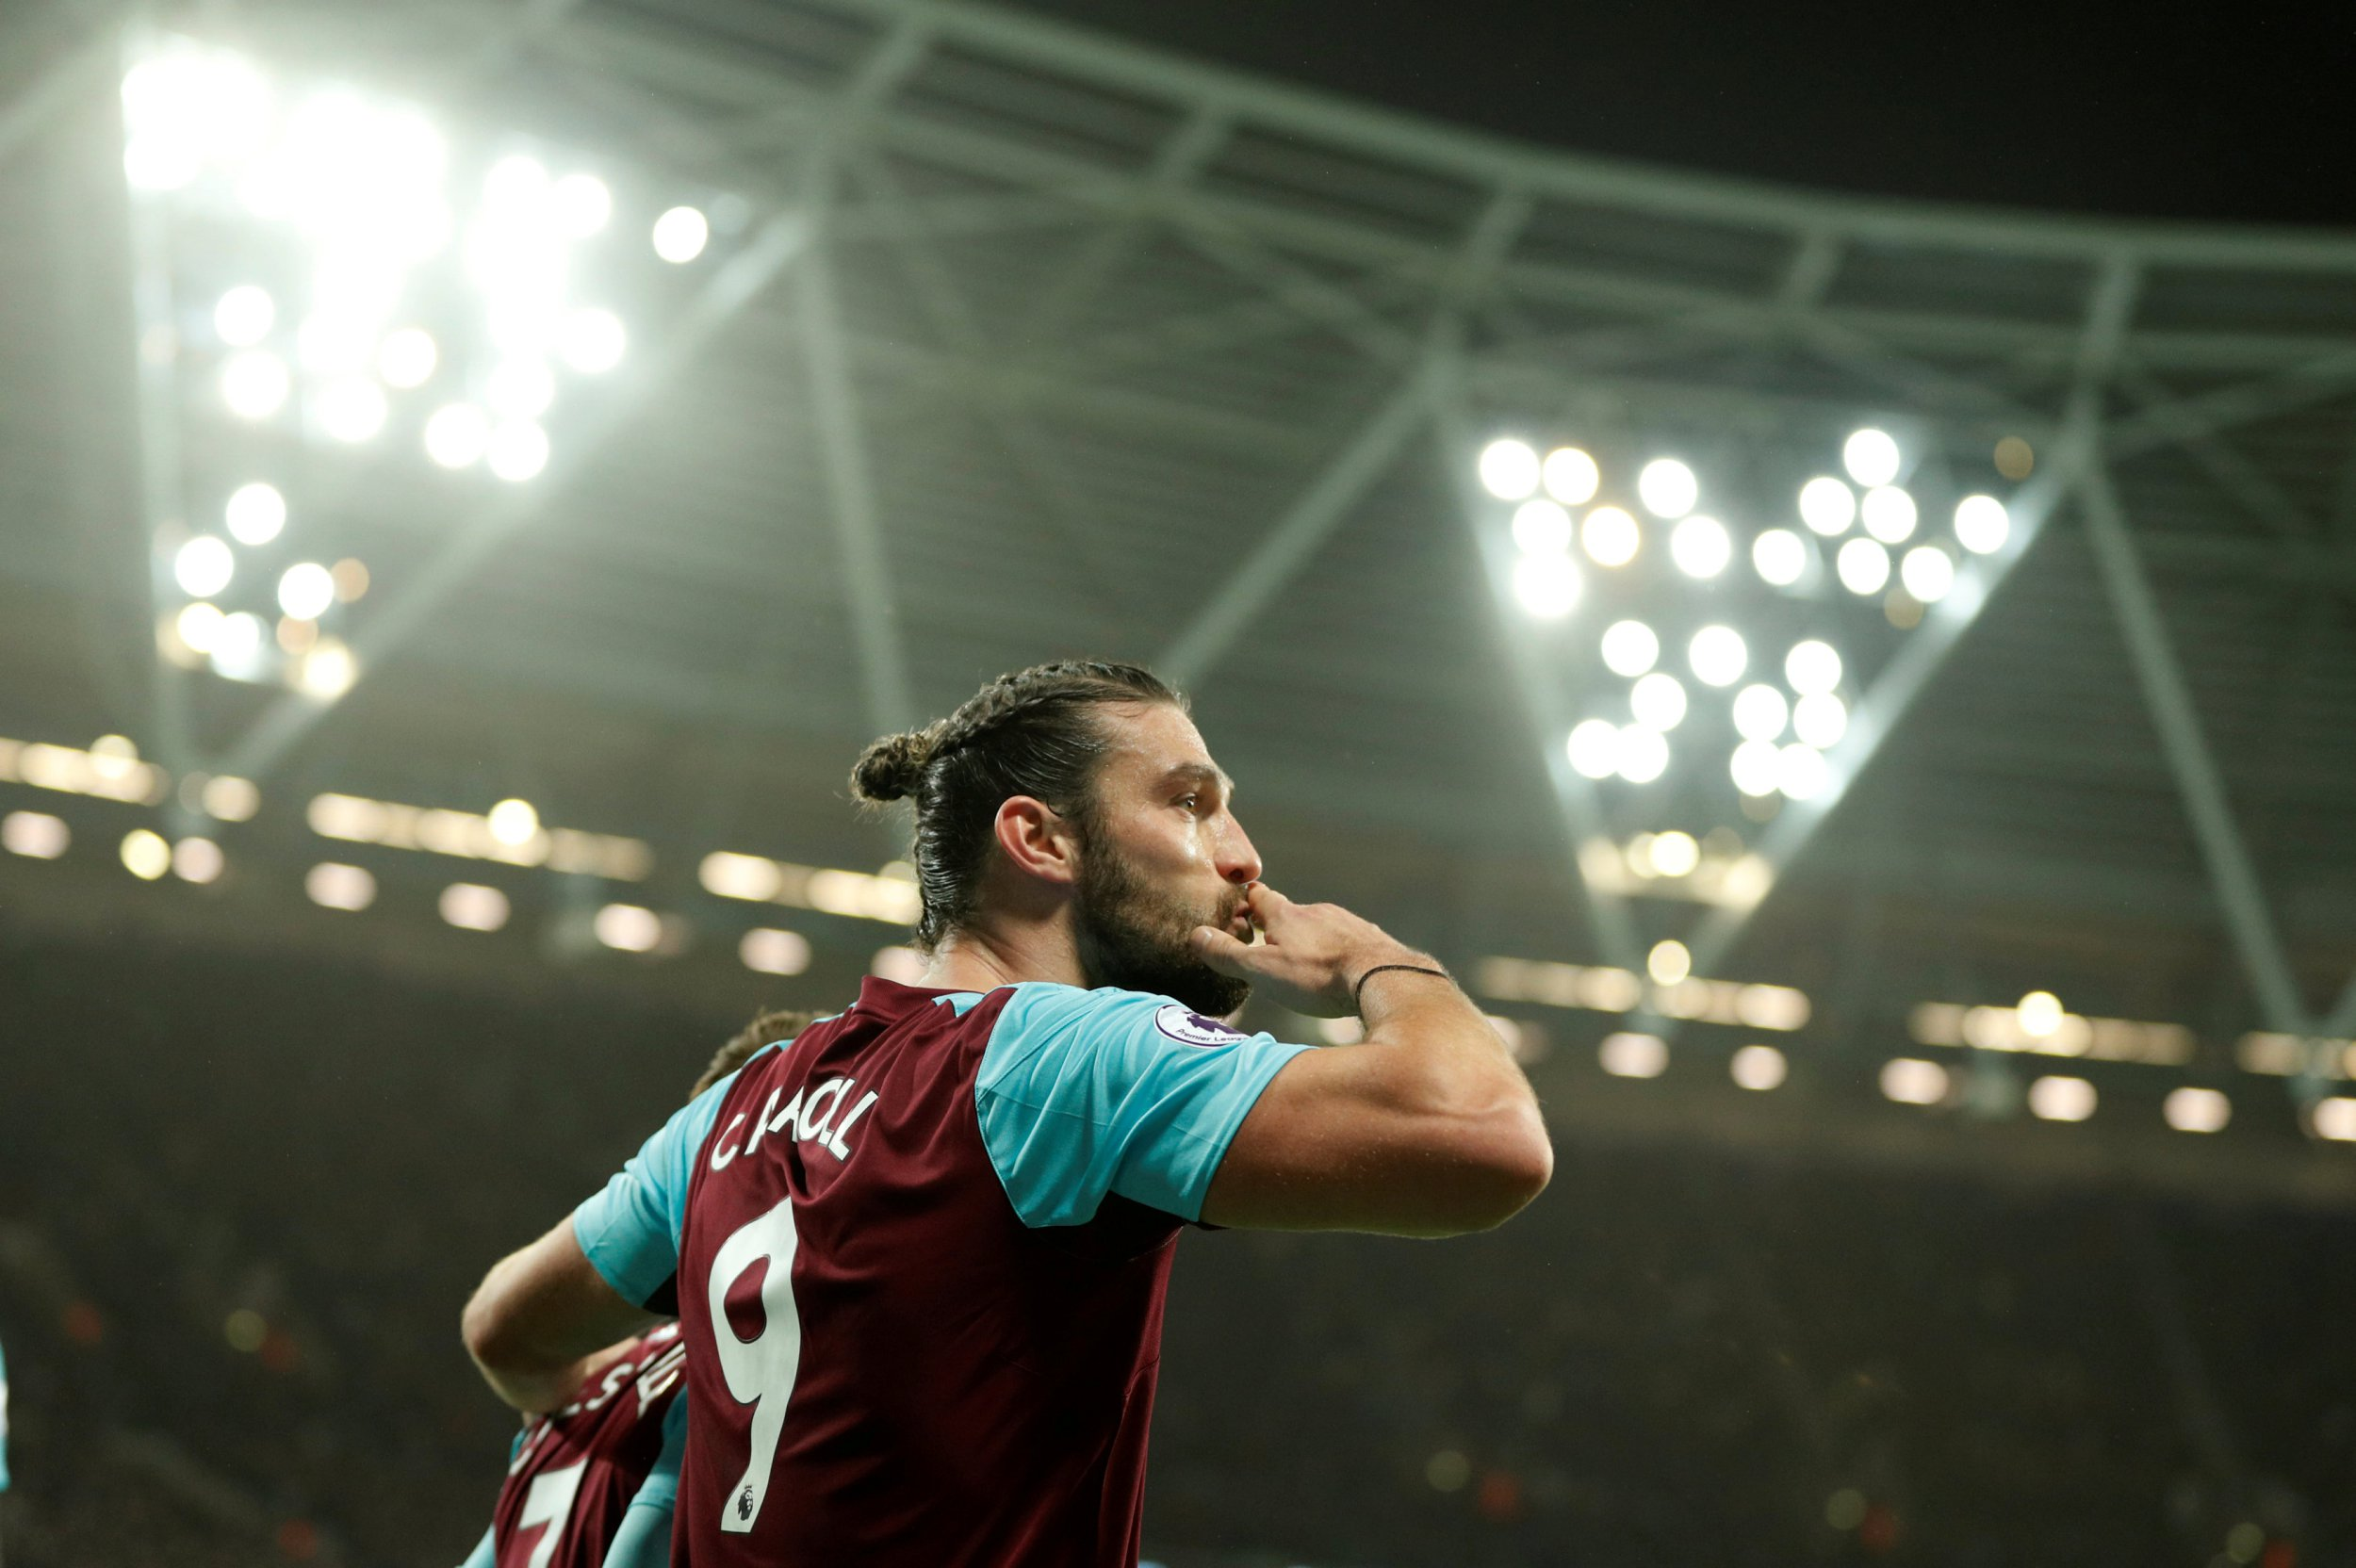 Andy Carroll hoping Chelsea will move for £20million transfer so as to seal 'dream' switch